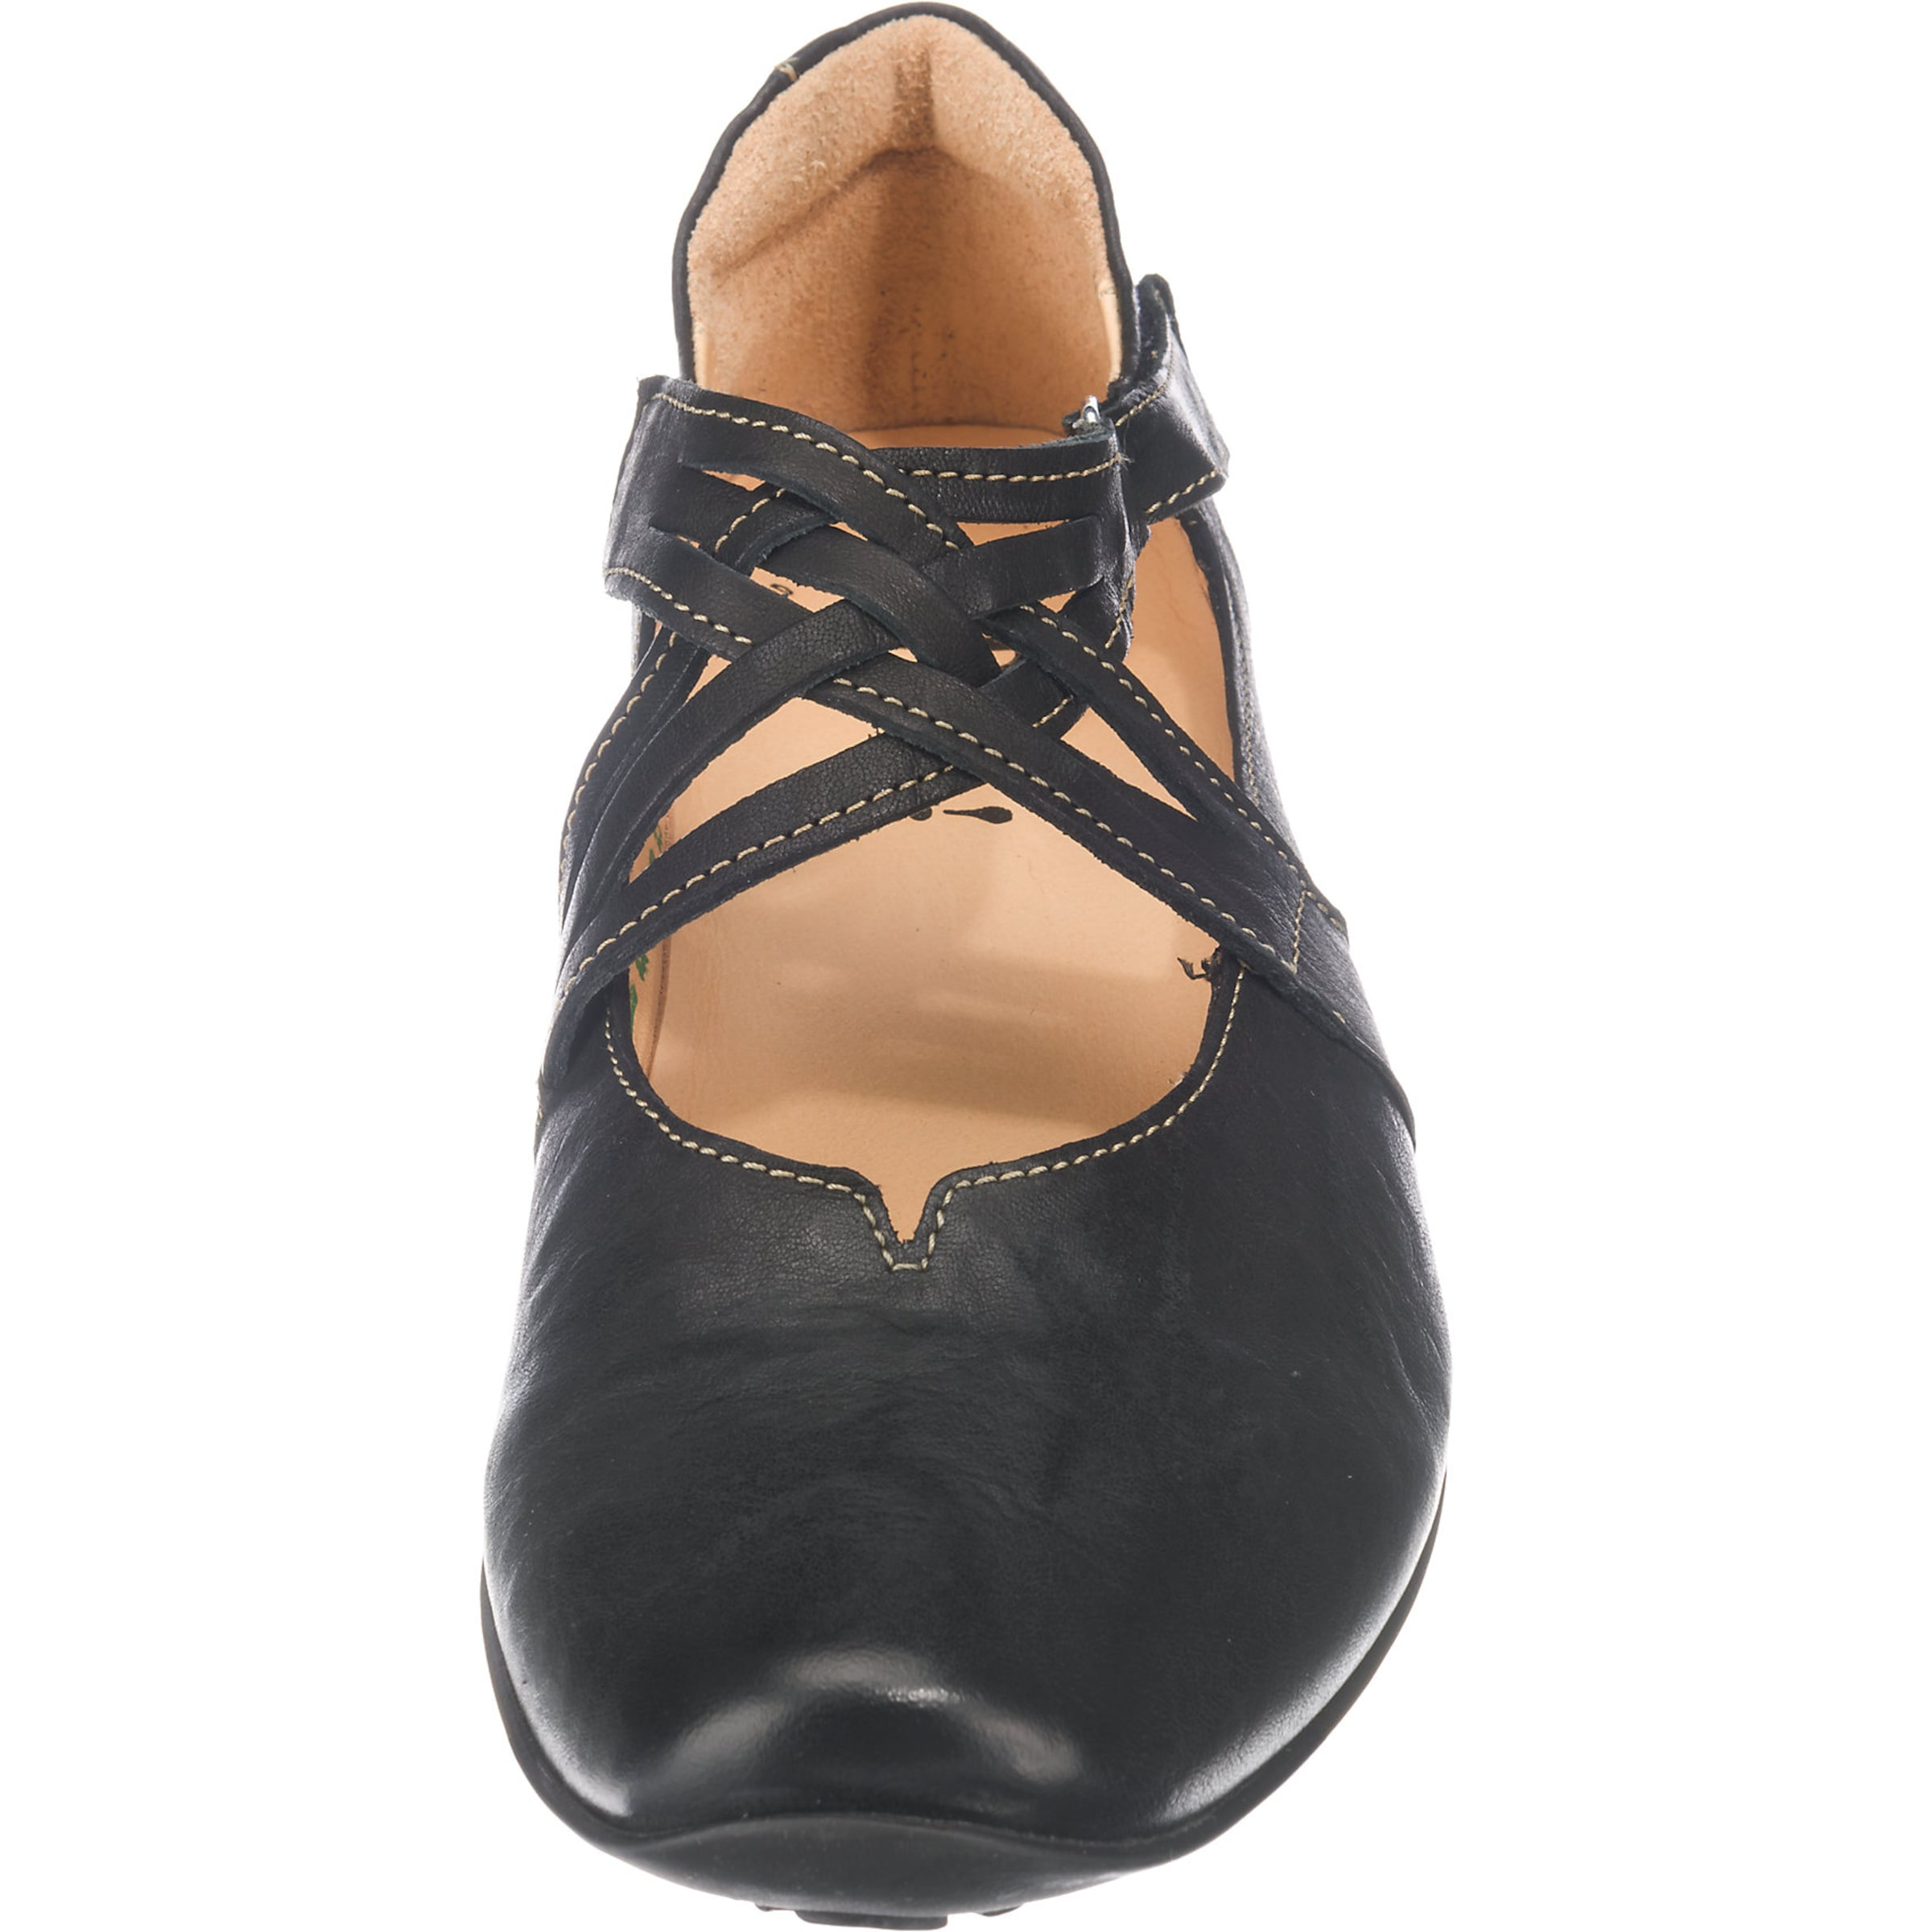 ThinkBallerinas ThinkBallerinas Schwarz In 'chilli' In 'chilli' In Schwarz Schwarz ThinkBallerinas ThinkBallerinas 'chilli' gf7y6vYb